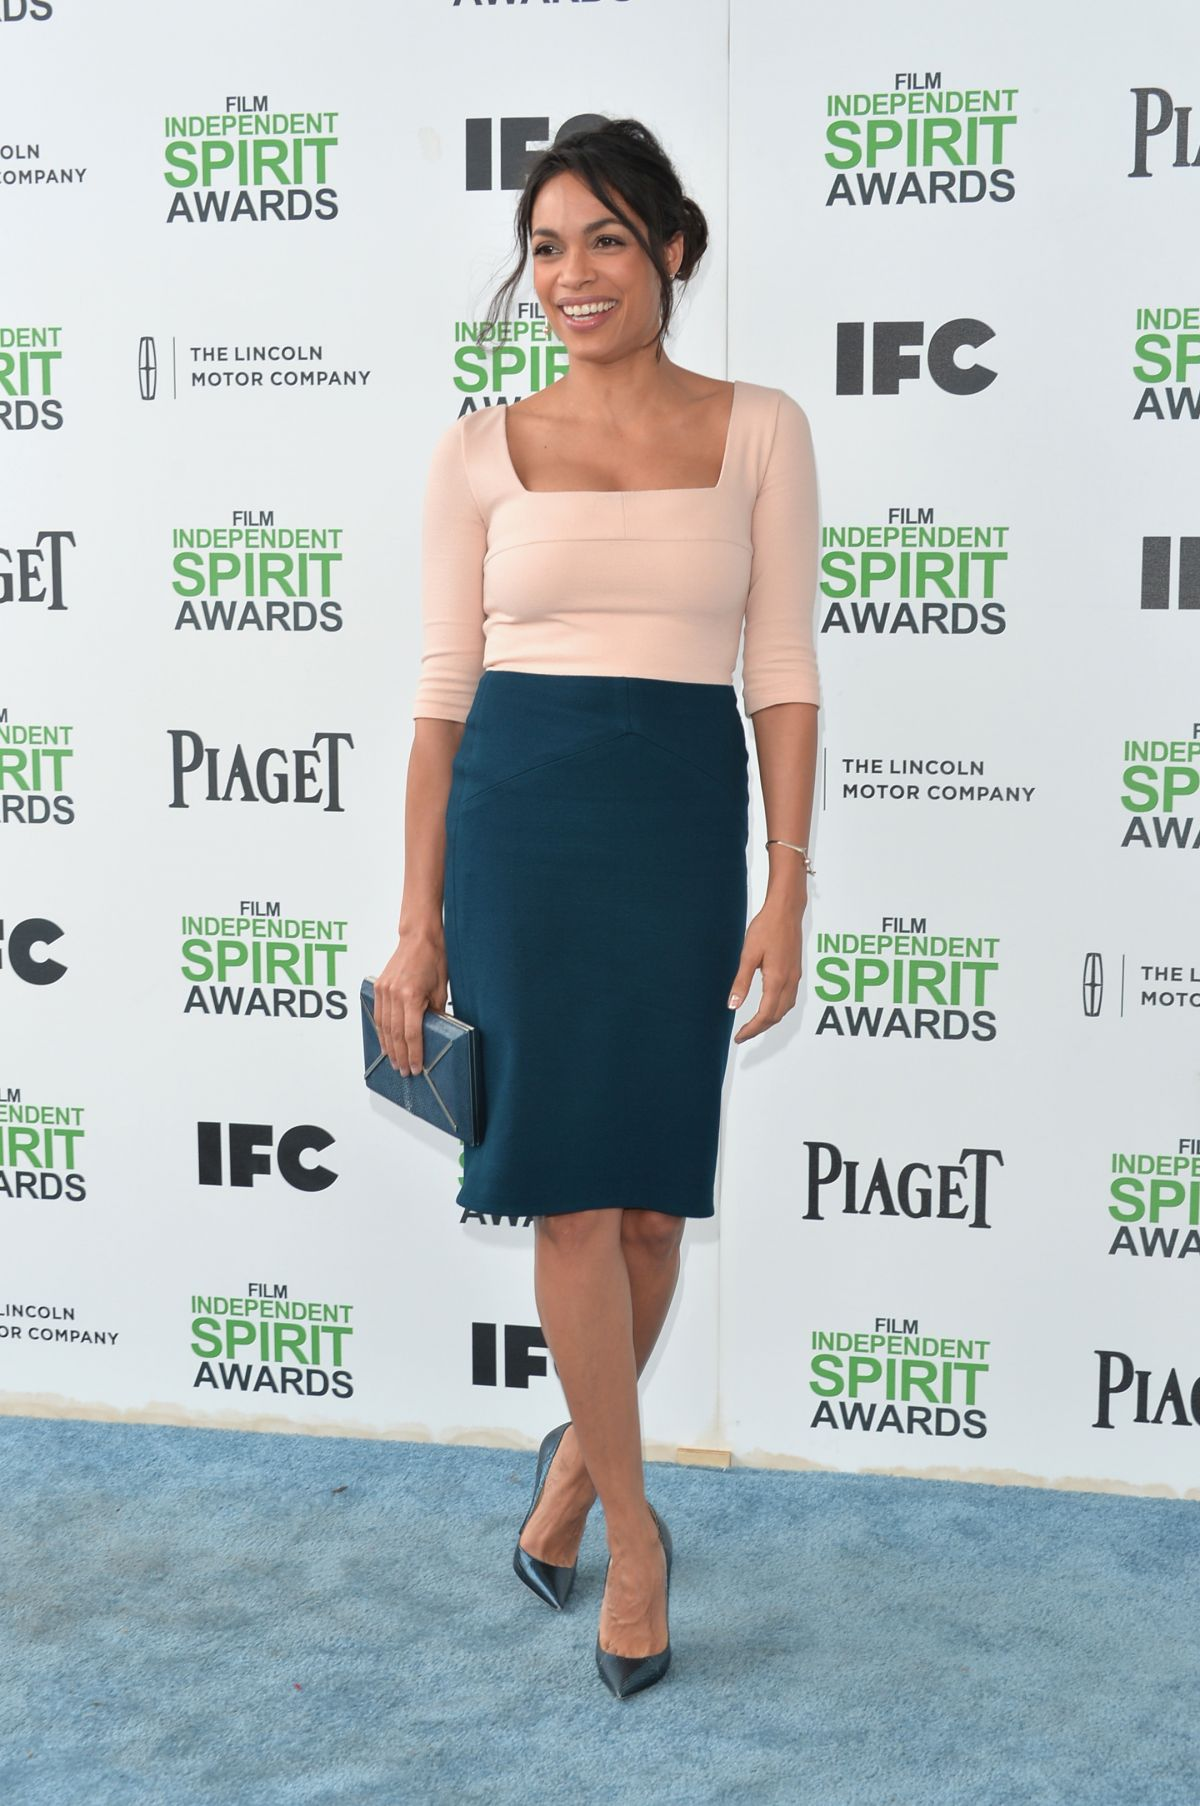 Rosario Dawson At 2014 Film Independent Spirit Awards In Santa Monica